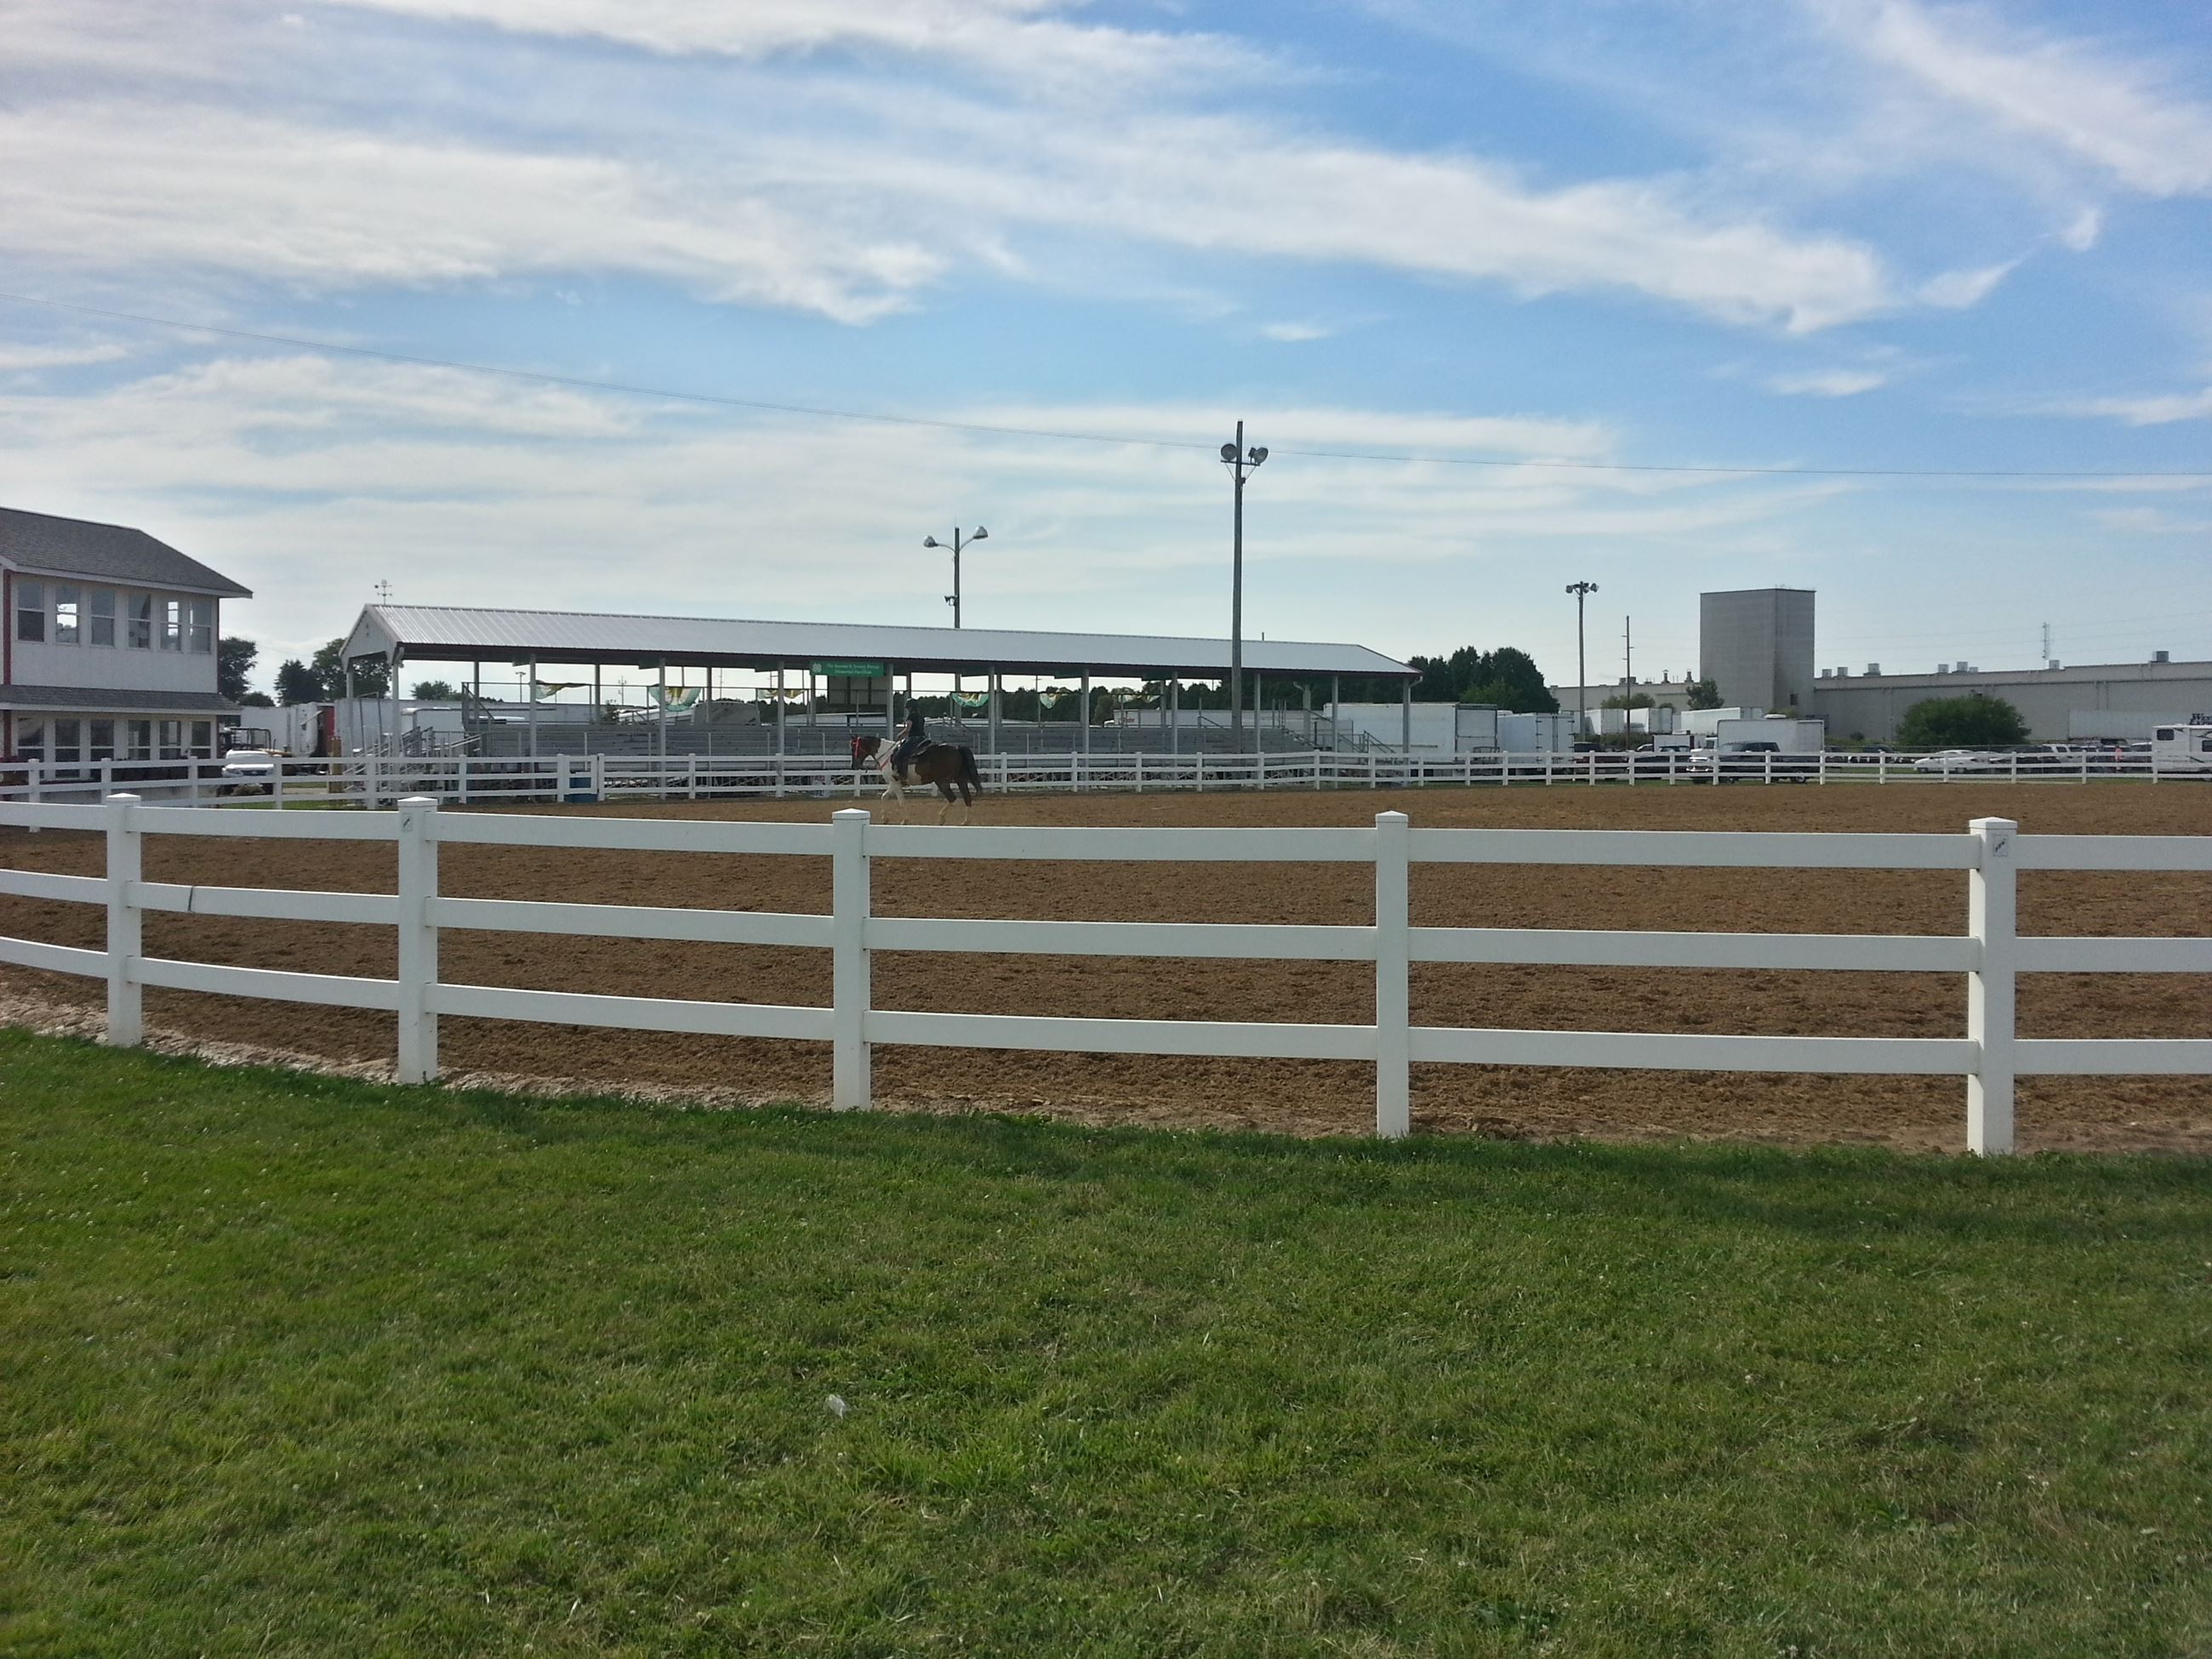 Horse riding arena with bleacher seating area in the background